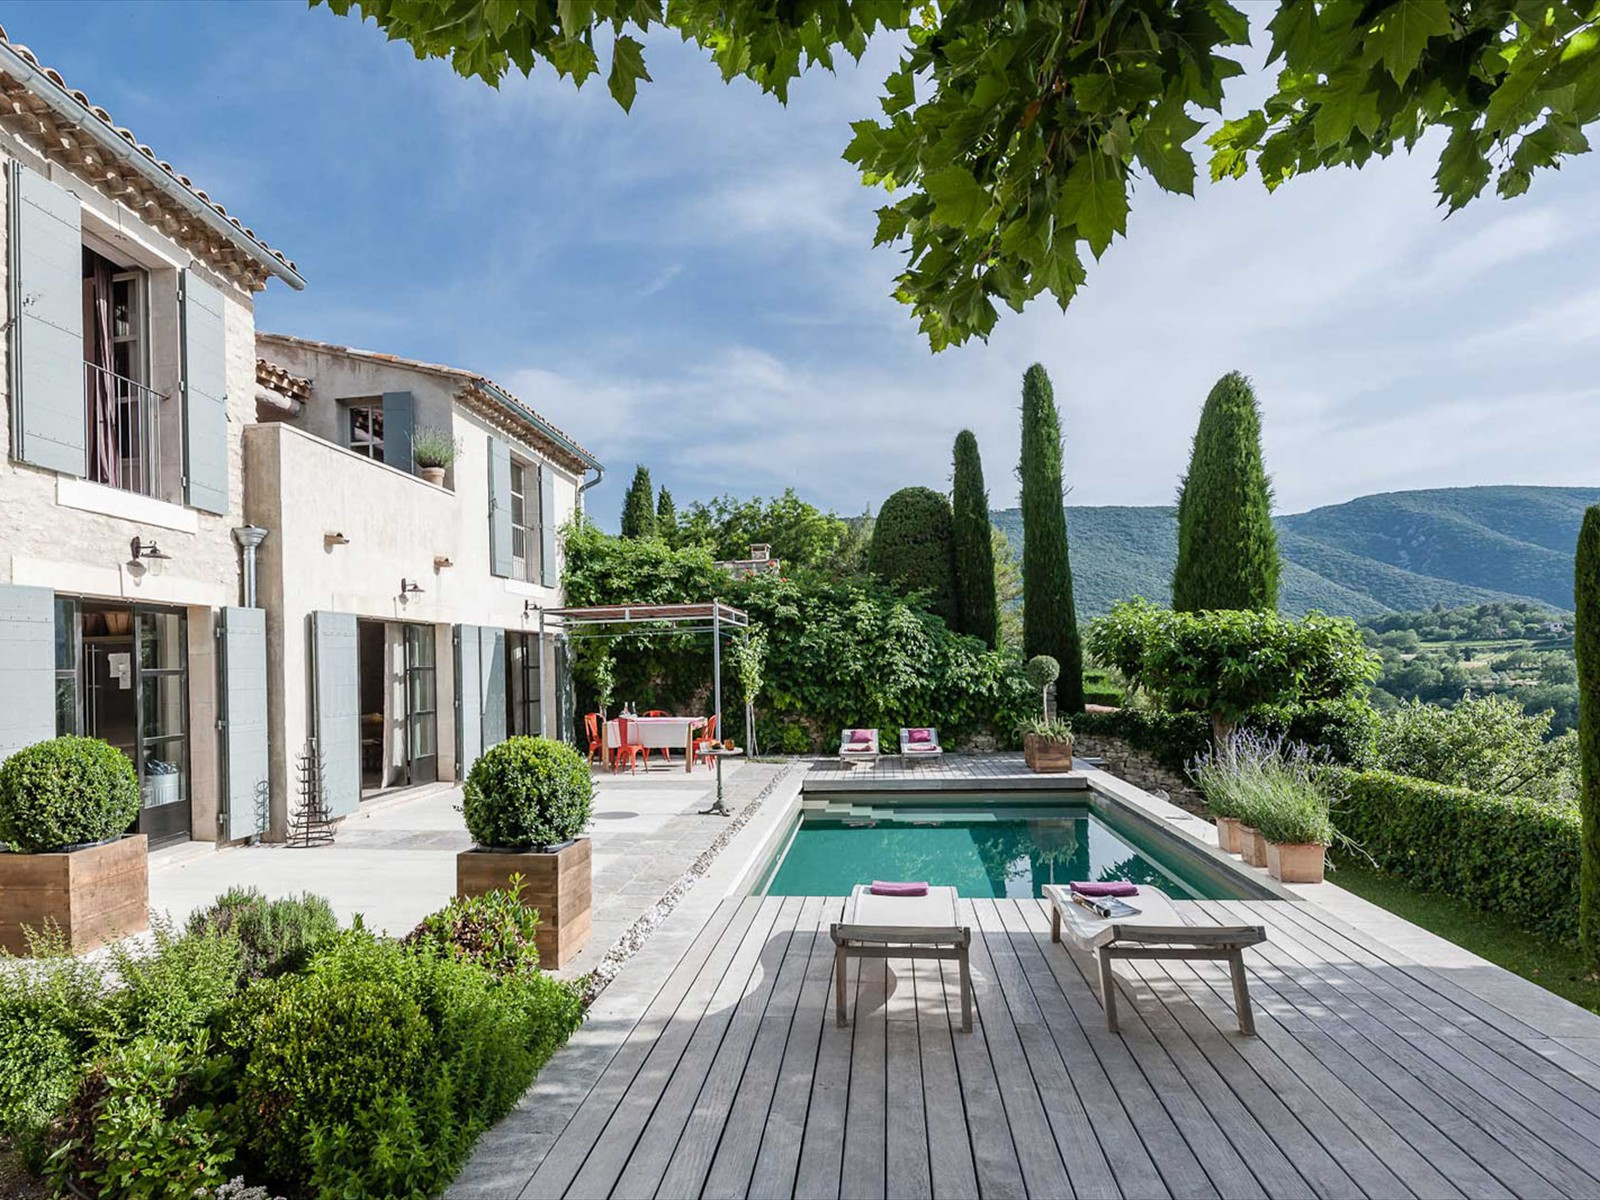 exclusive_rentals_provence_vacation_luxury_homes_holiday_rentals_mont_ventoux_luberon_03